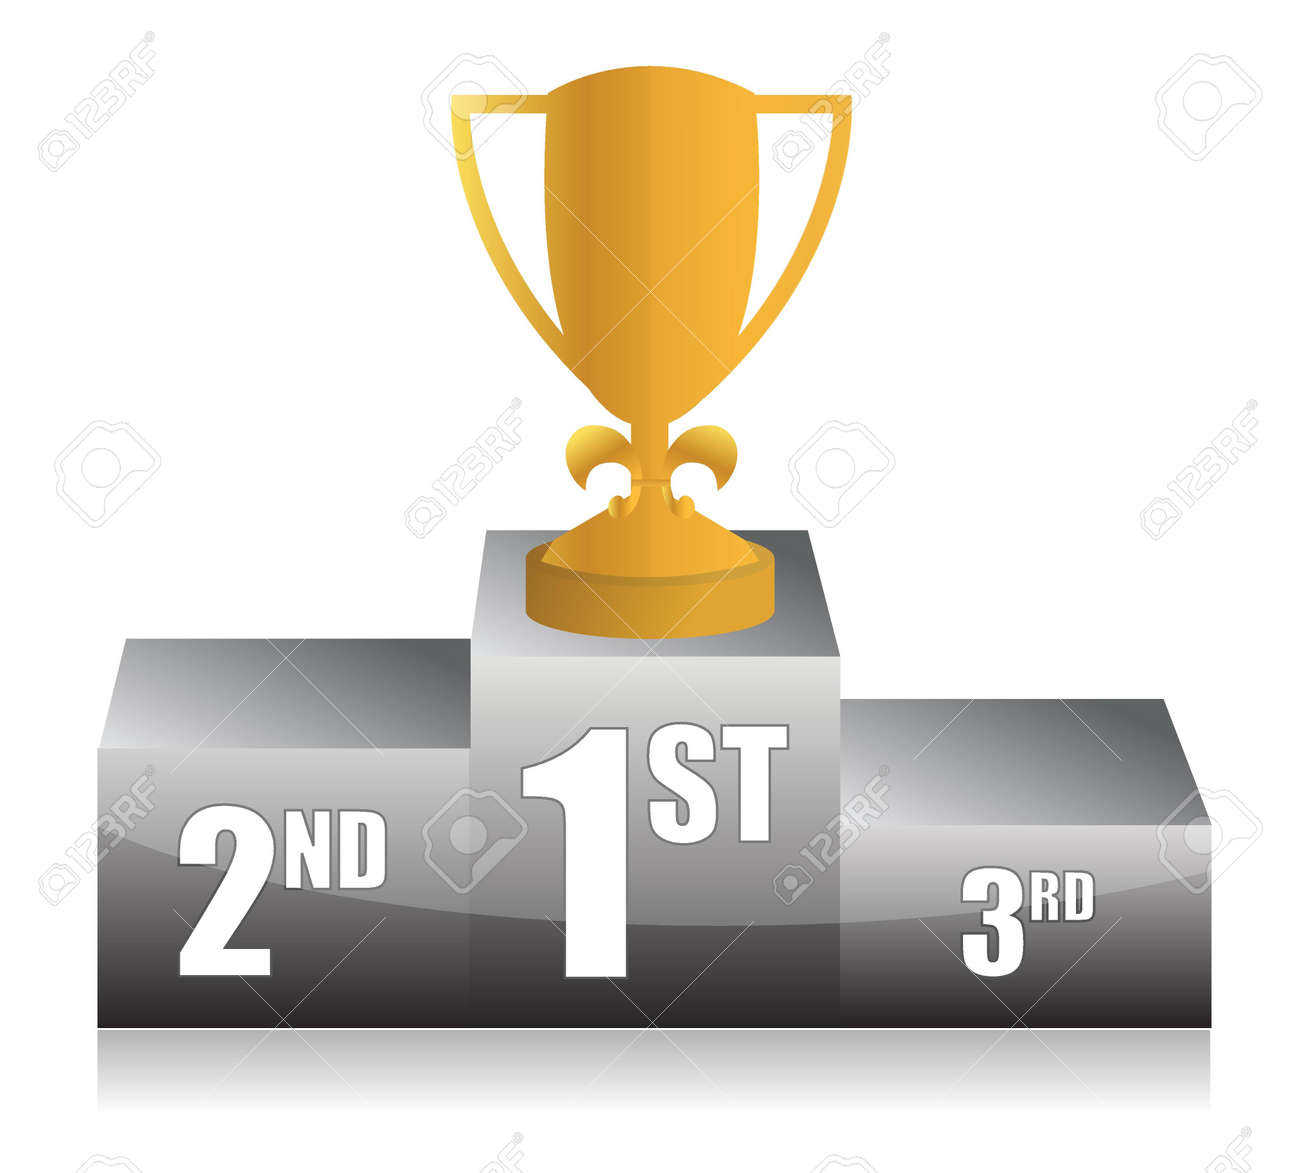 Gold Trophy Cup 1st Place Illustration Design Stock Vector